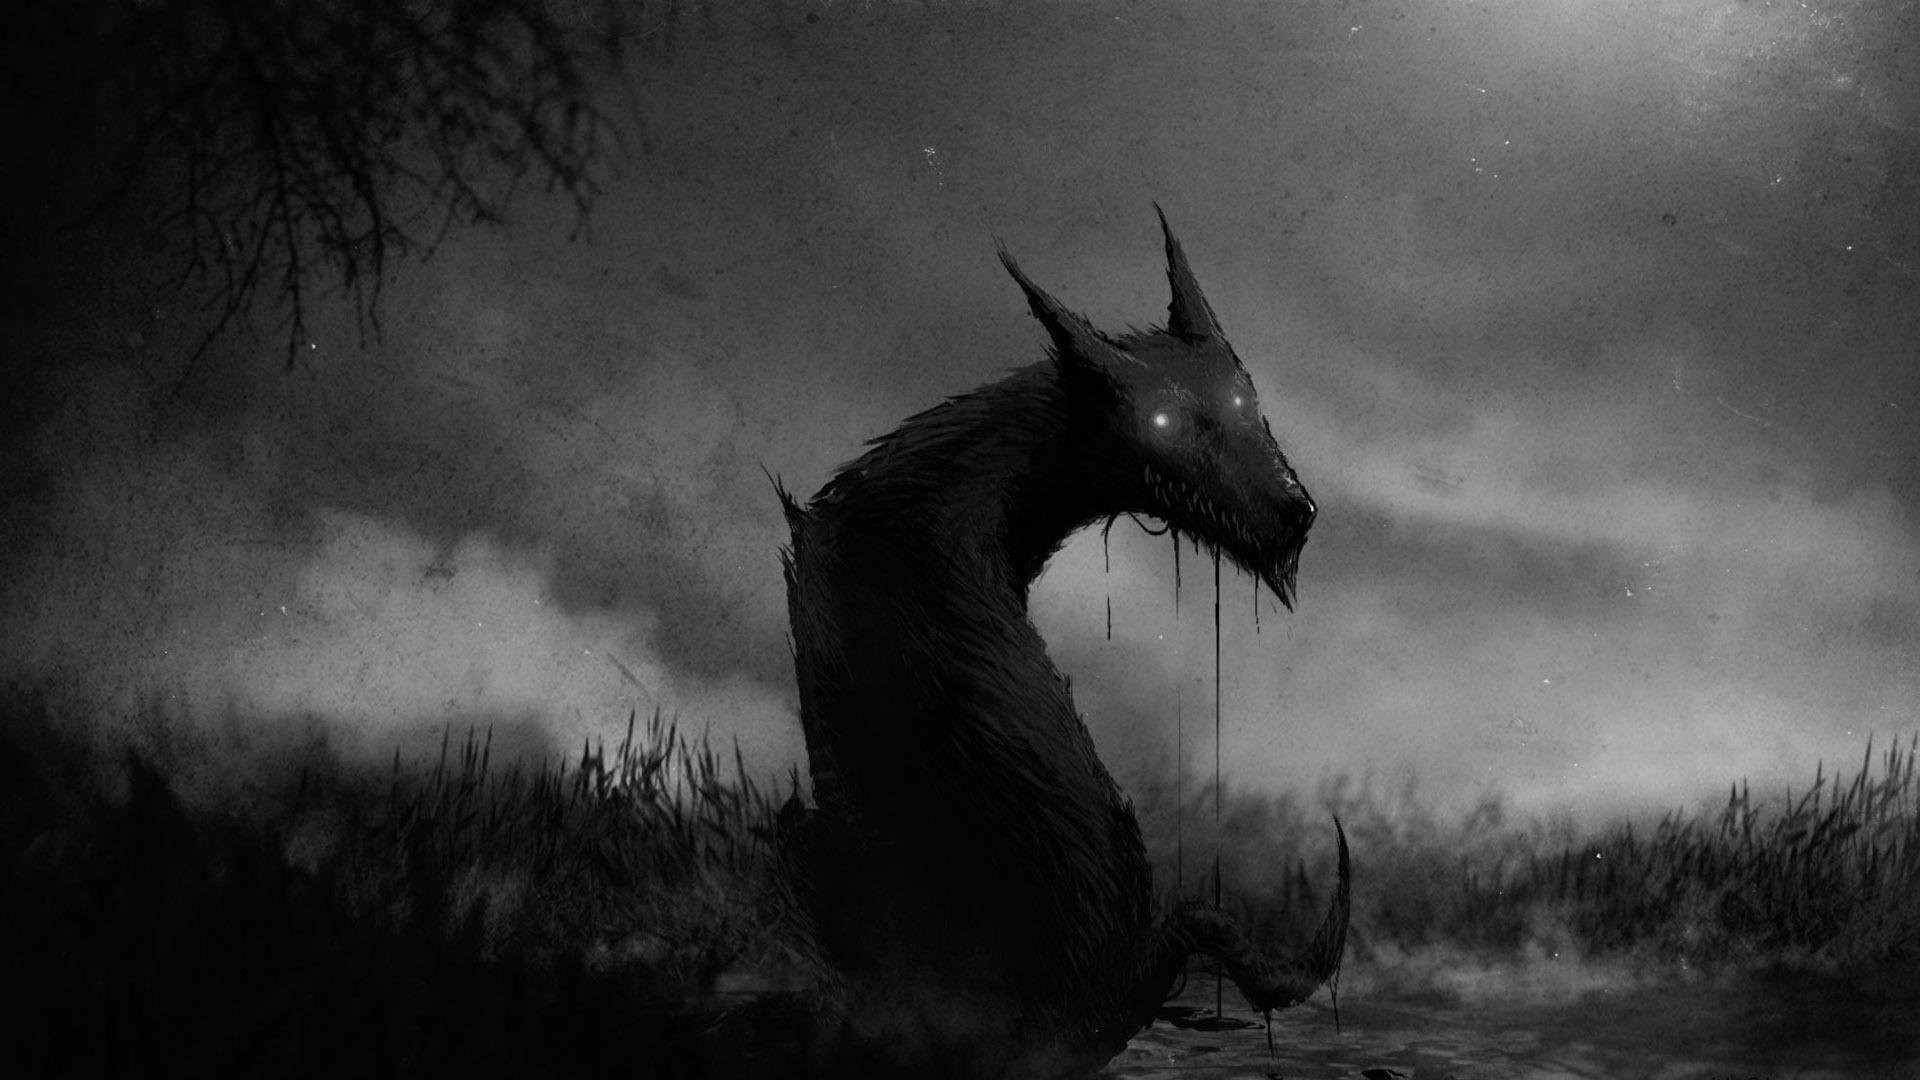 Scary Wallpapers Hd 1920x1080 60 Images